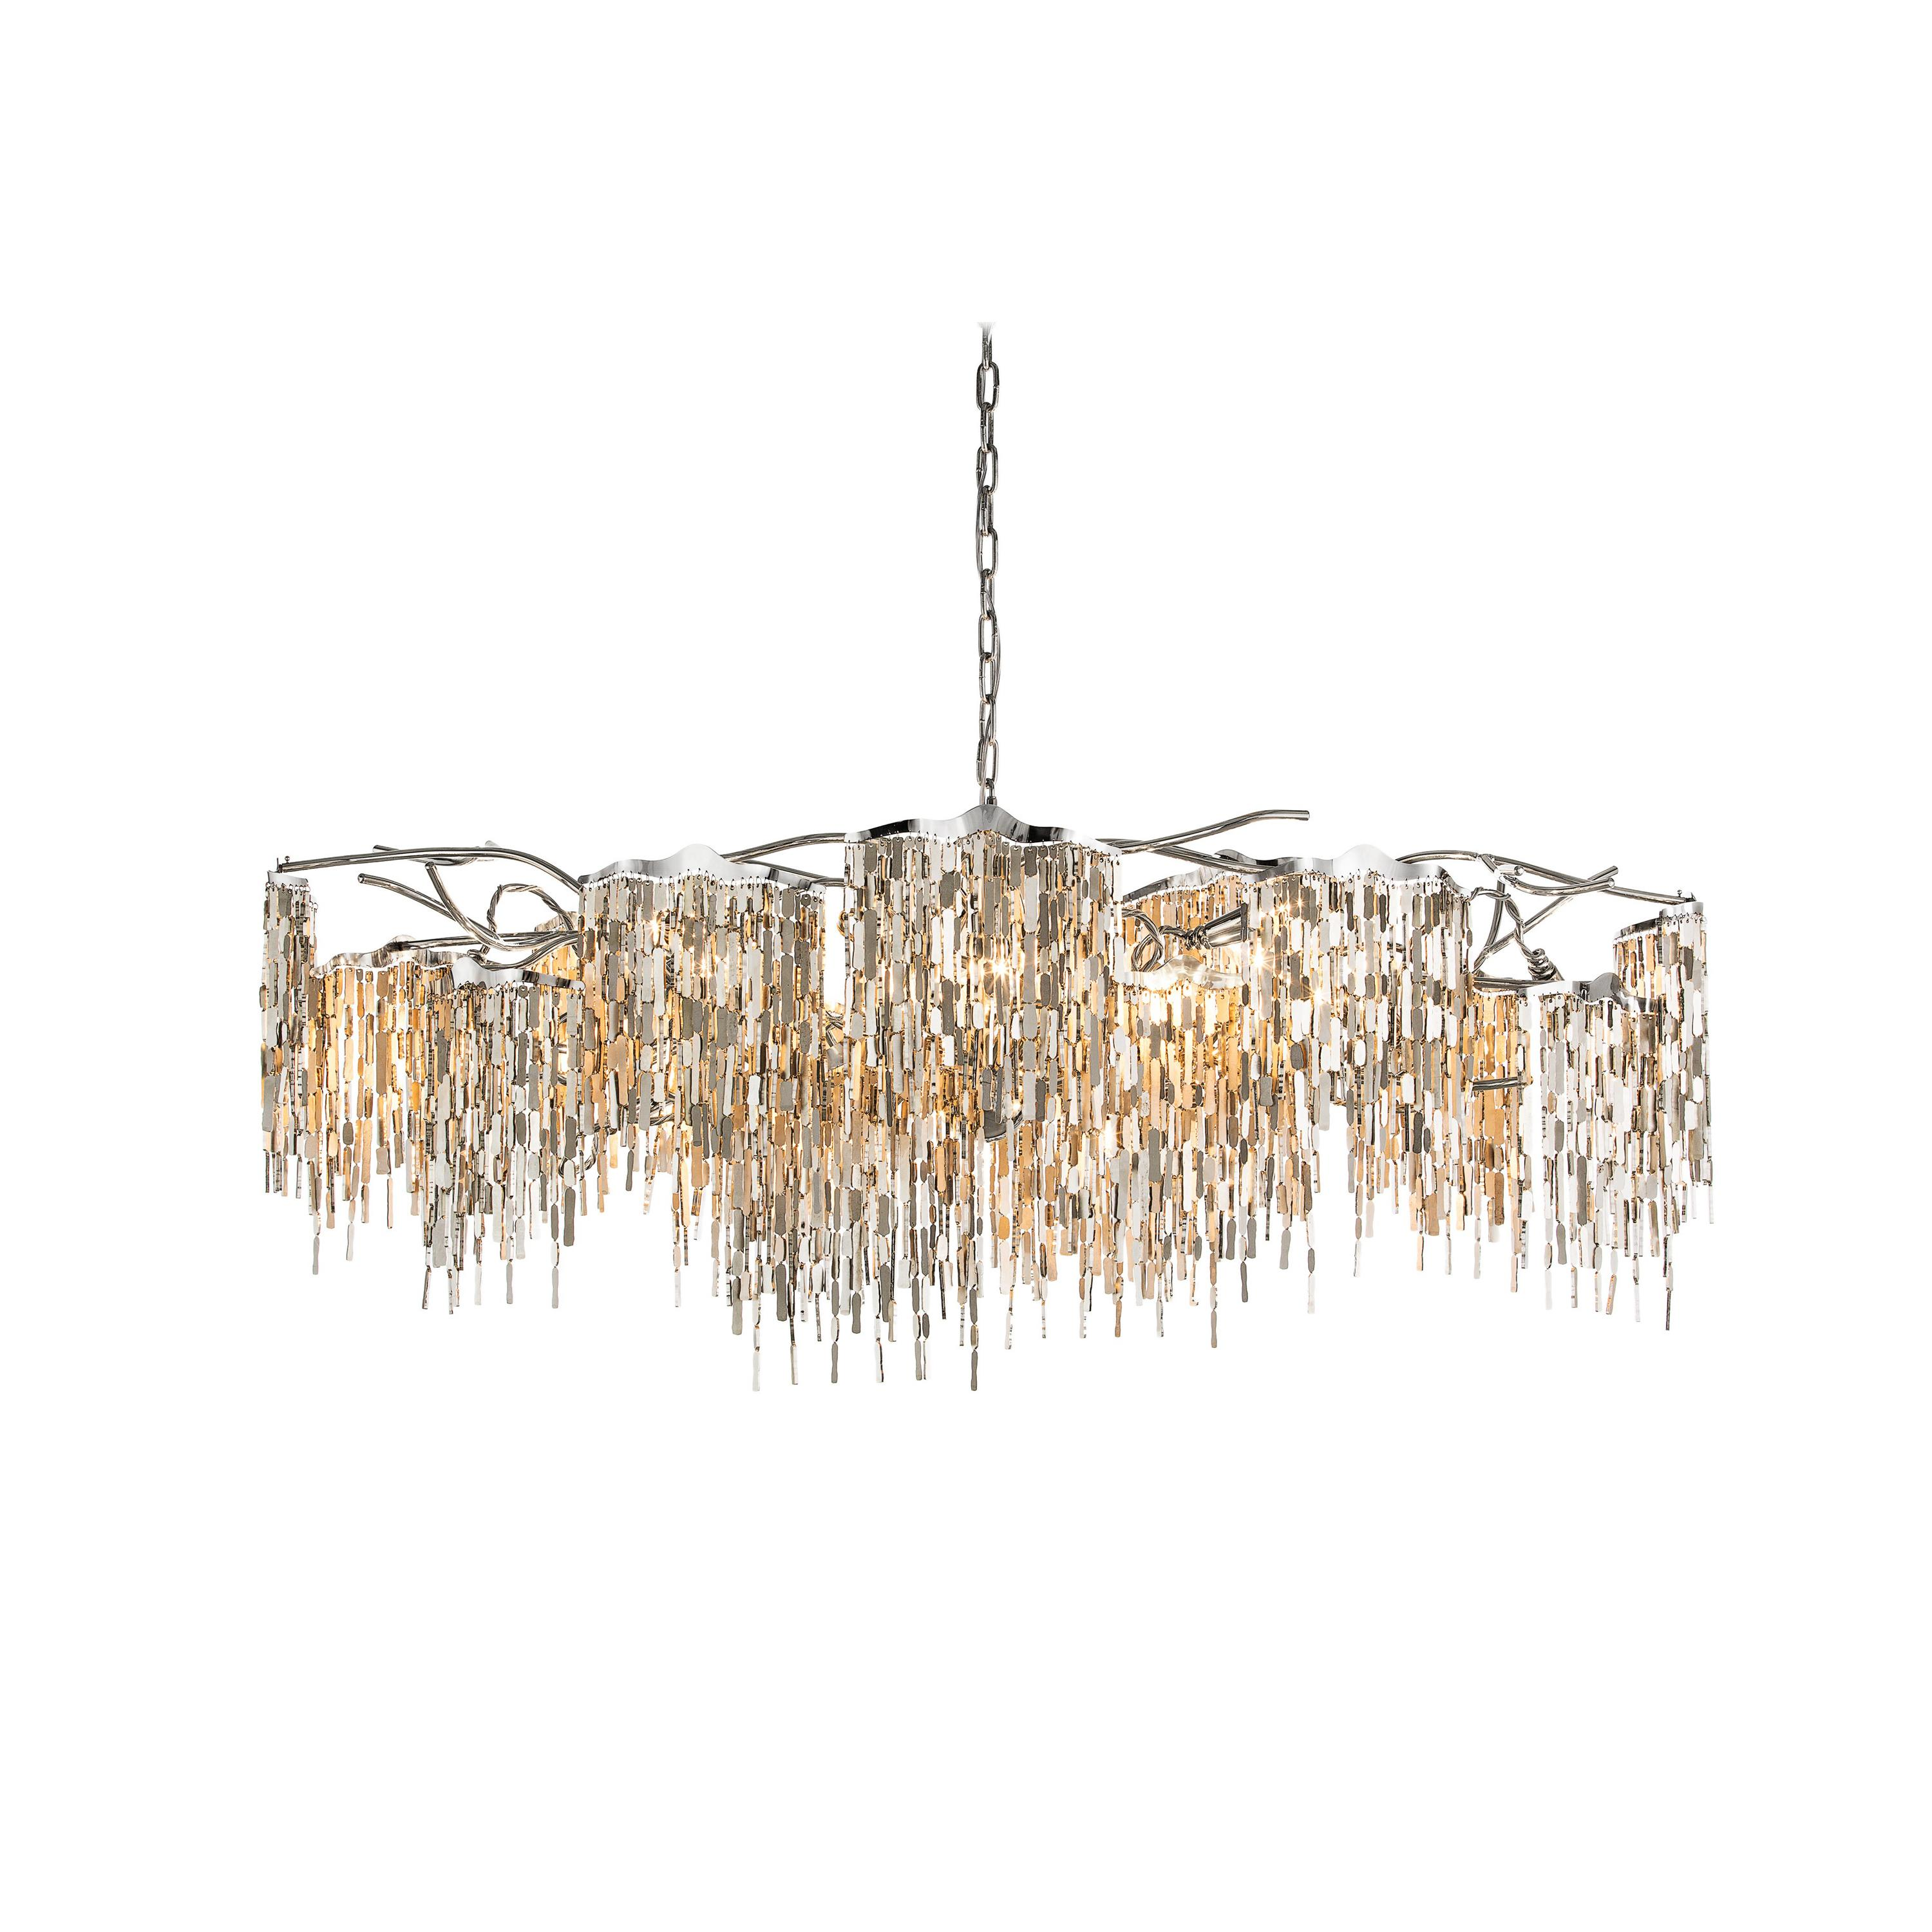 Modern Chandelier in an Oval Shape and in a Nickel Finish, Arthur Collection